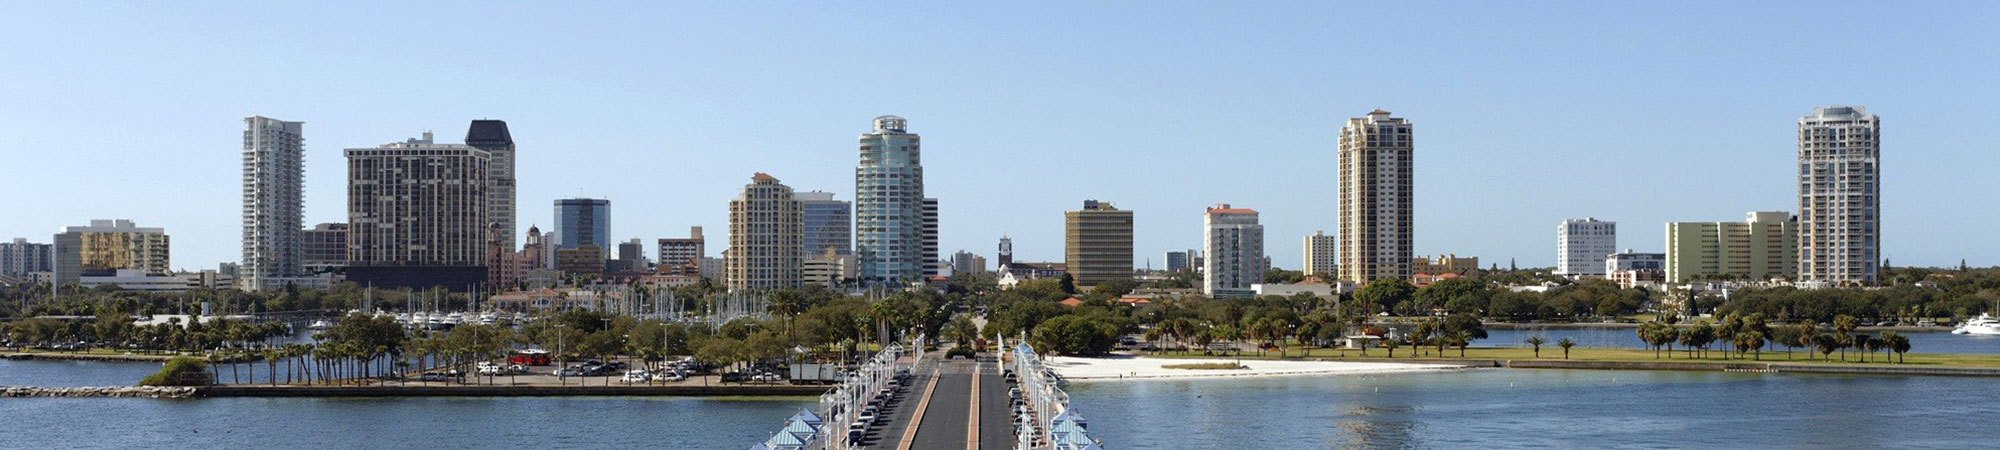 st-petersburg-florida